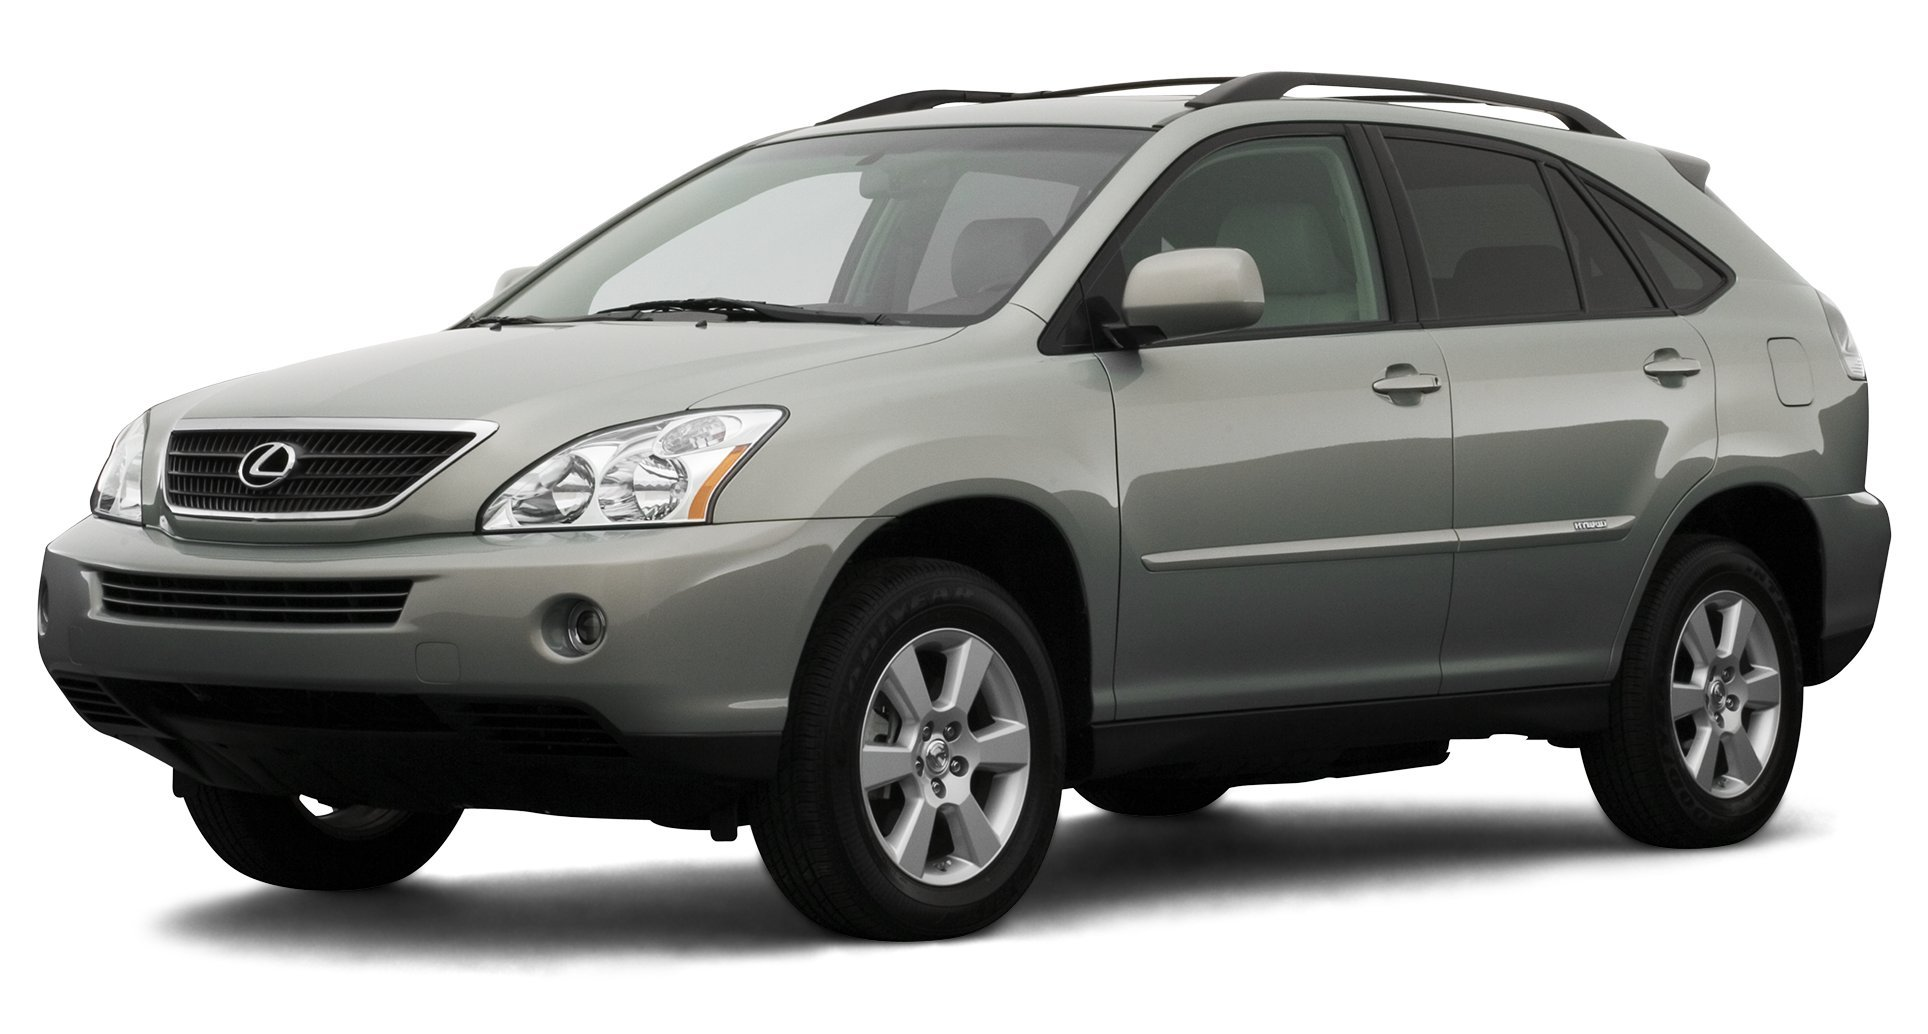 2007 Lexus Rx400h Reviews Images And Specs Vehicles 2005 Rx330 All Wheel Drive 4 Door Hybrid